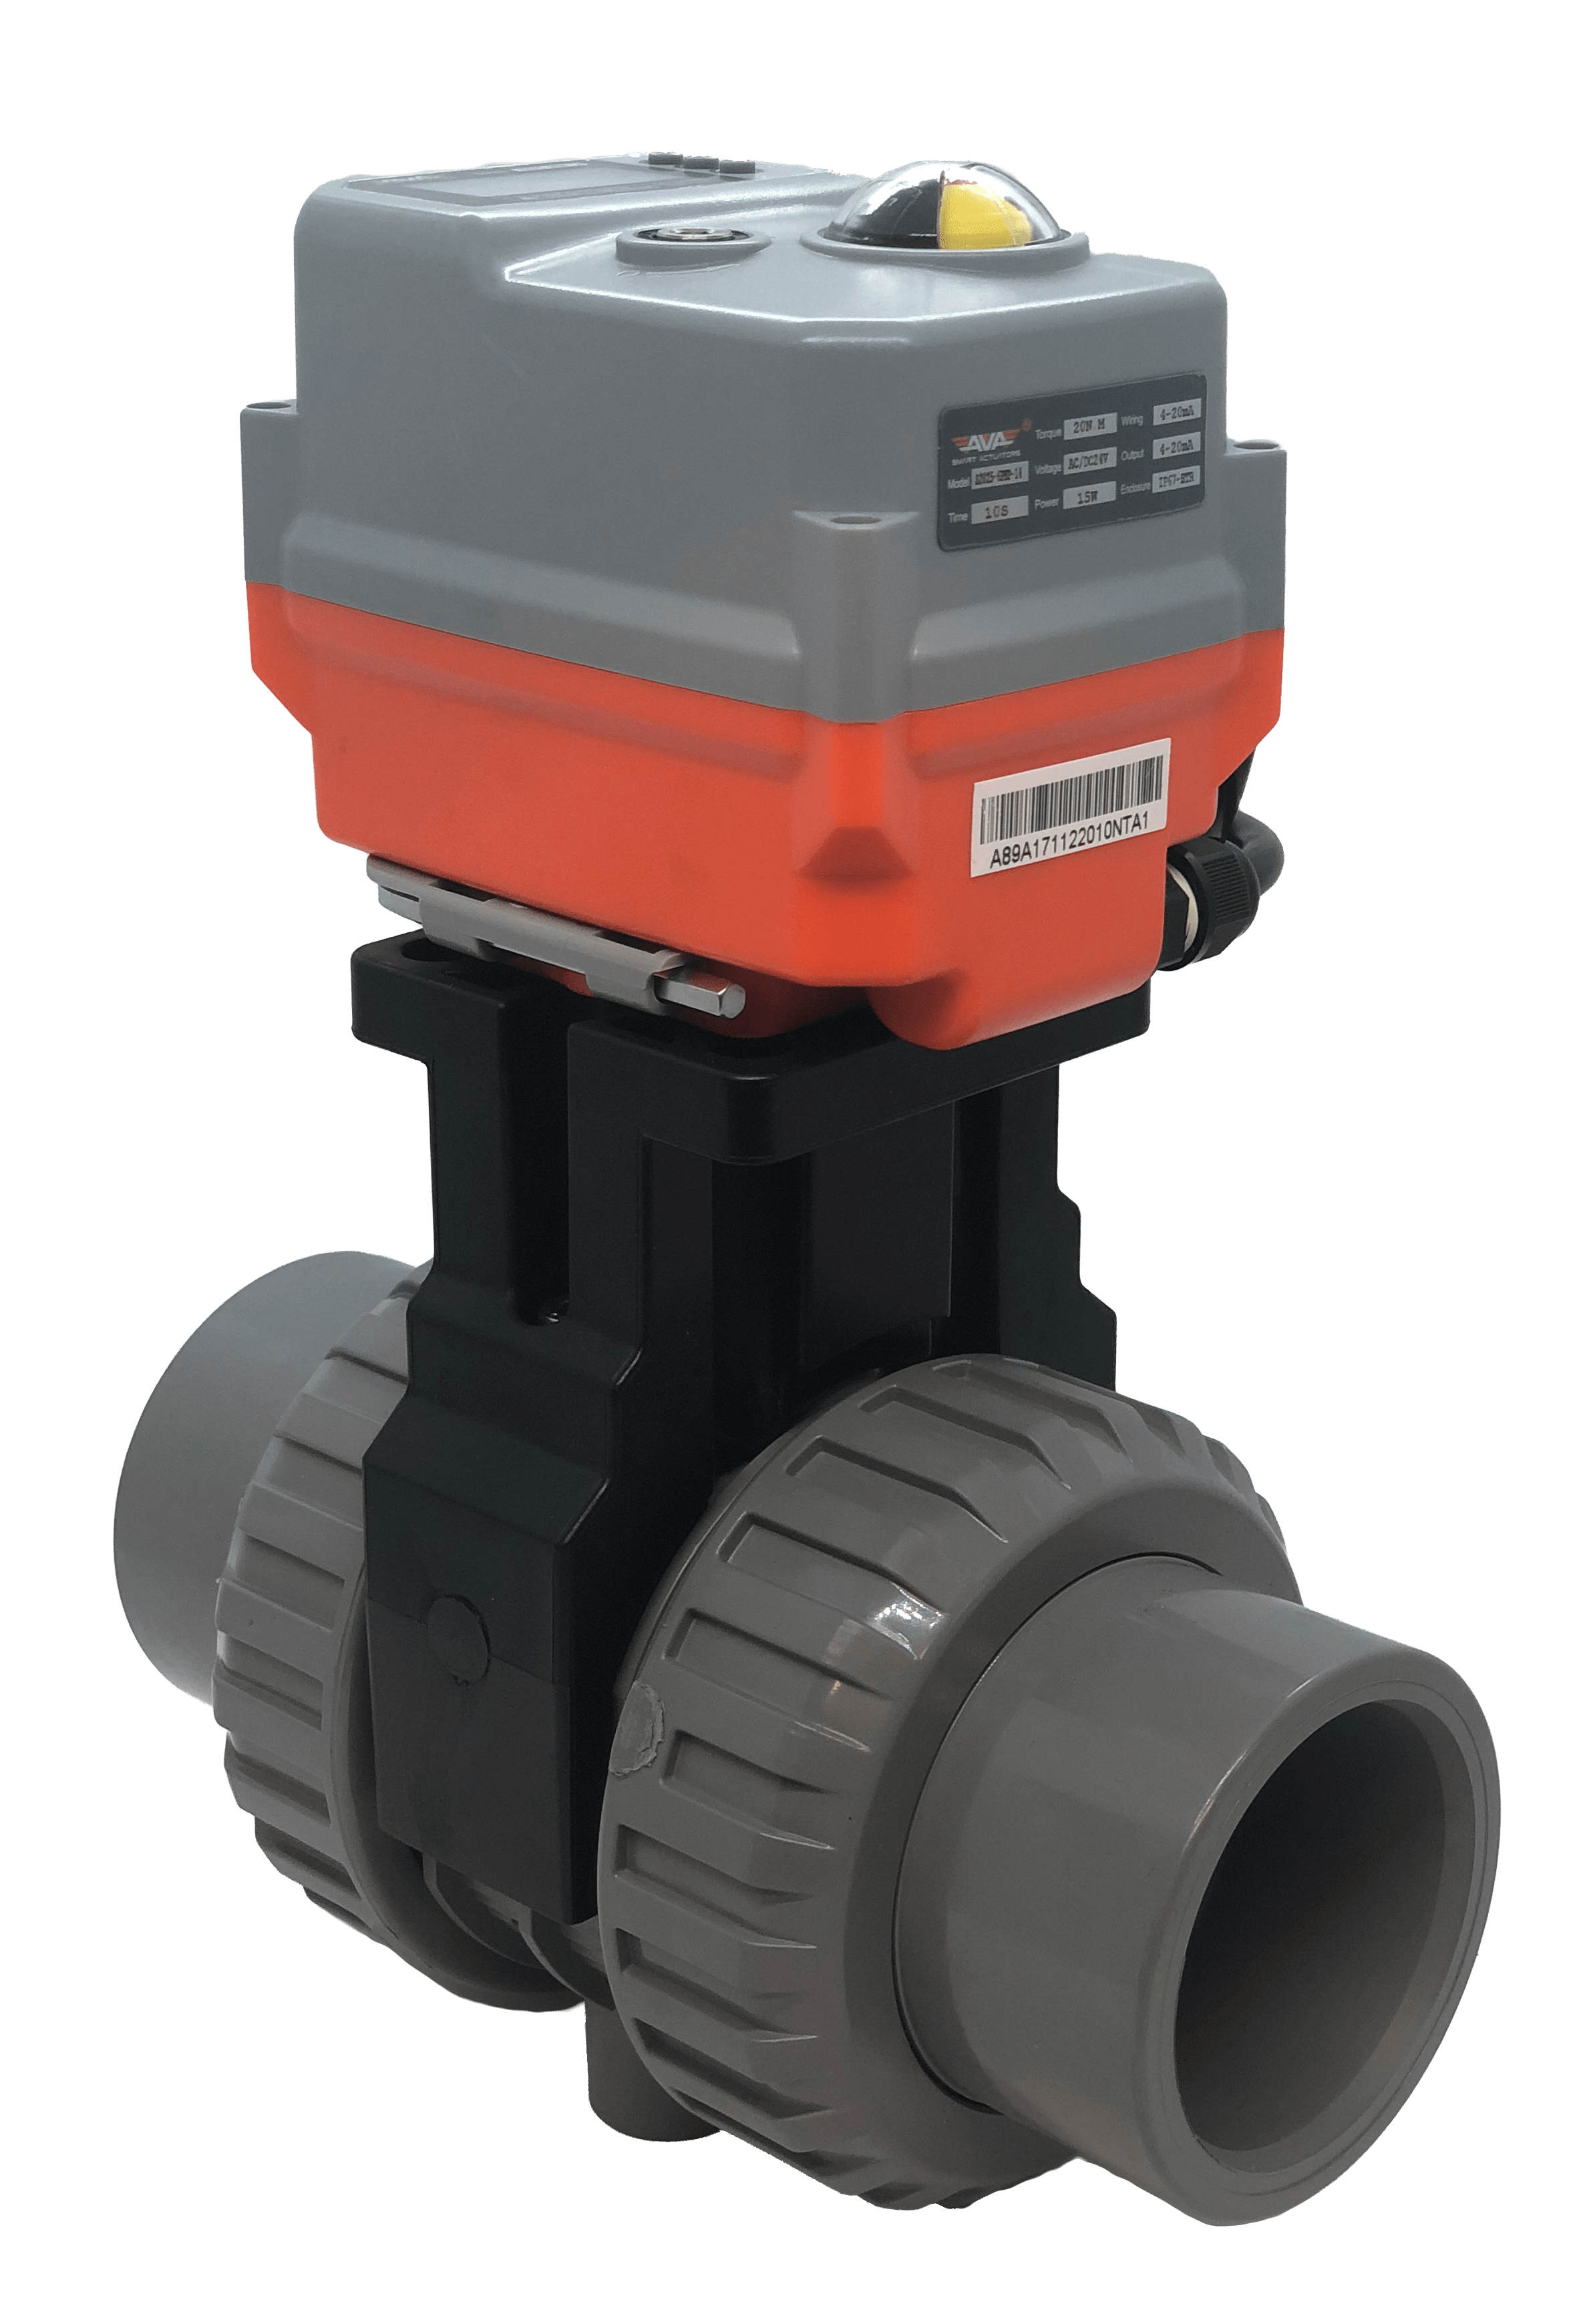 Actuated Valve - Motorized Ball Valve - Cepex Extreme PVC Ball